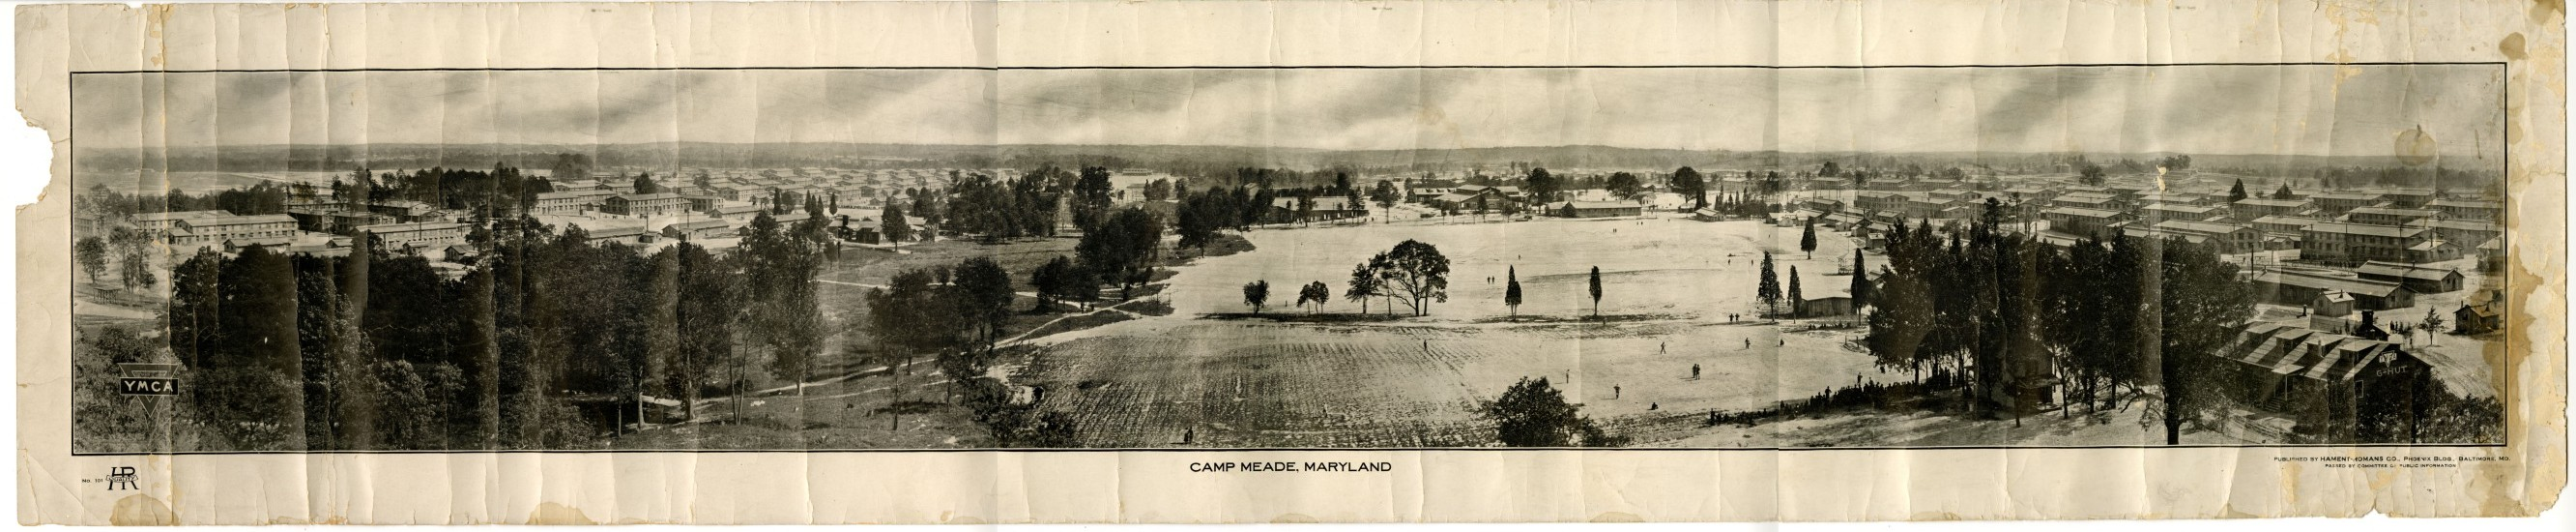 Panoramic Views of Camp Meade 1918 published by YMCA